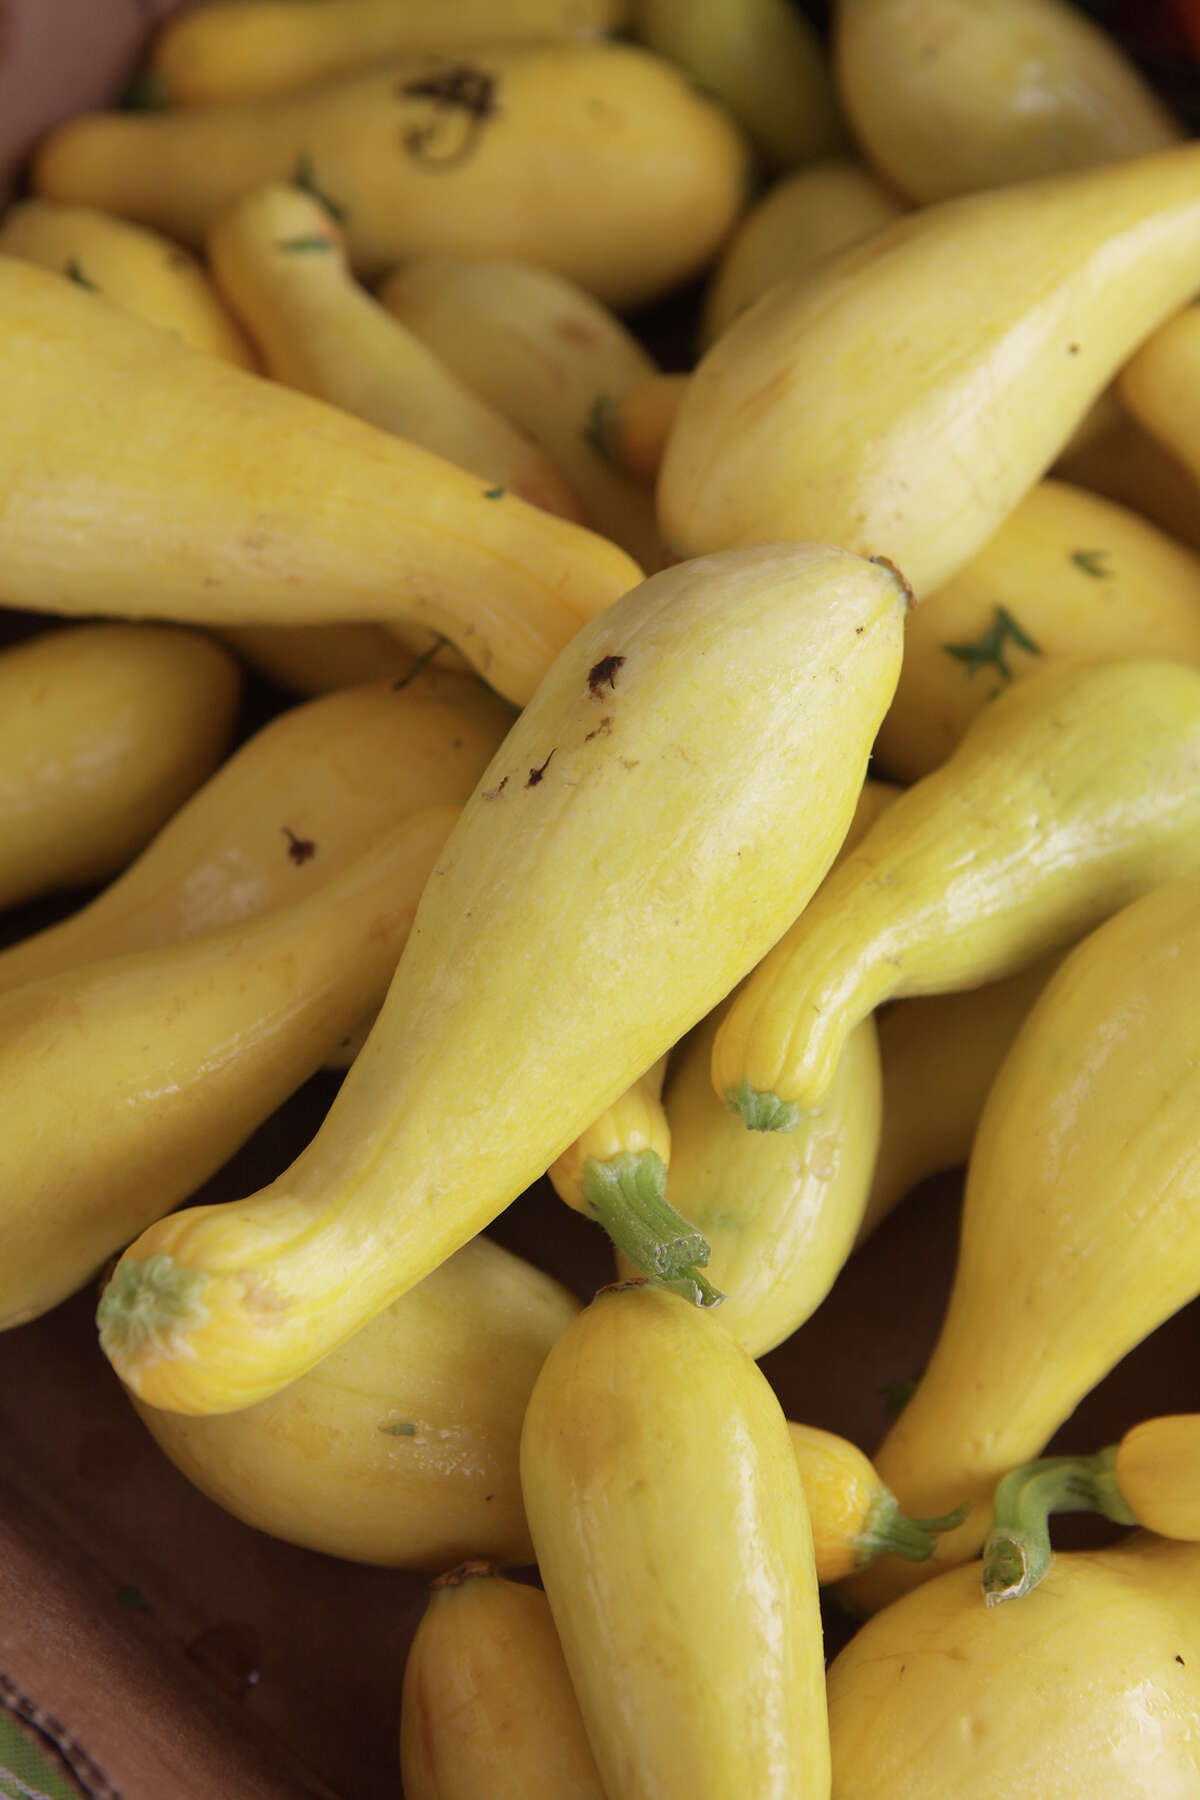 Edmonds Farms yellow summer squash at the Farmer's Market at Imperial in Sugar Land on Saturday, June 22, 2013. (Photo by Alan Warren)